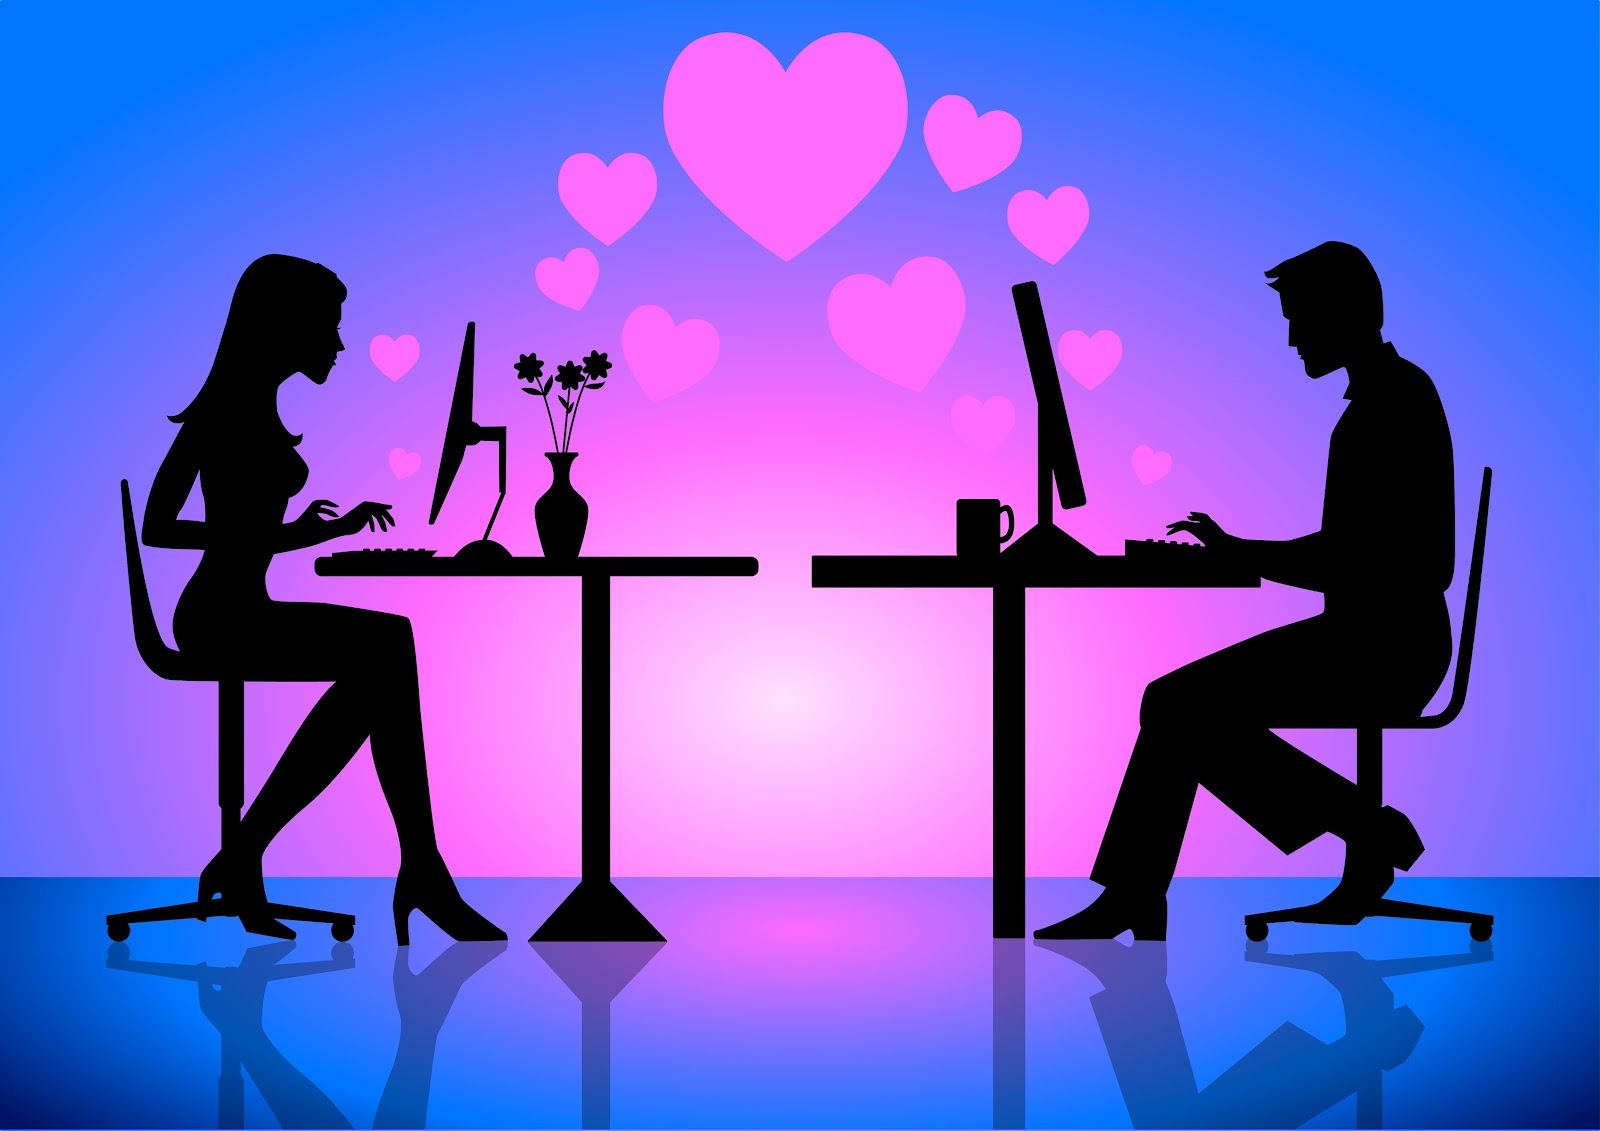 dating Register for free today at Uniformdating.com.